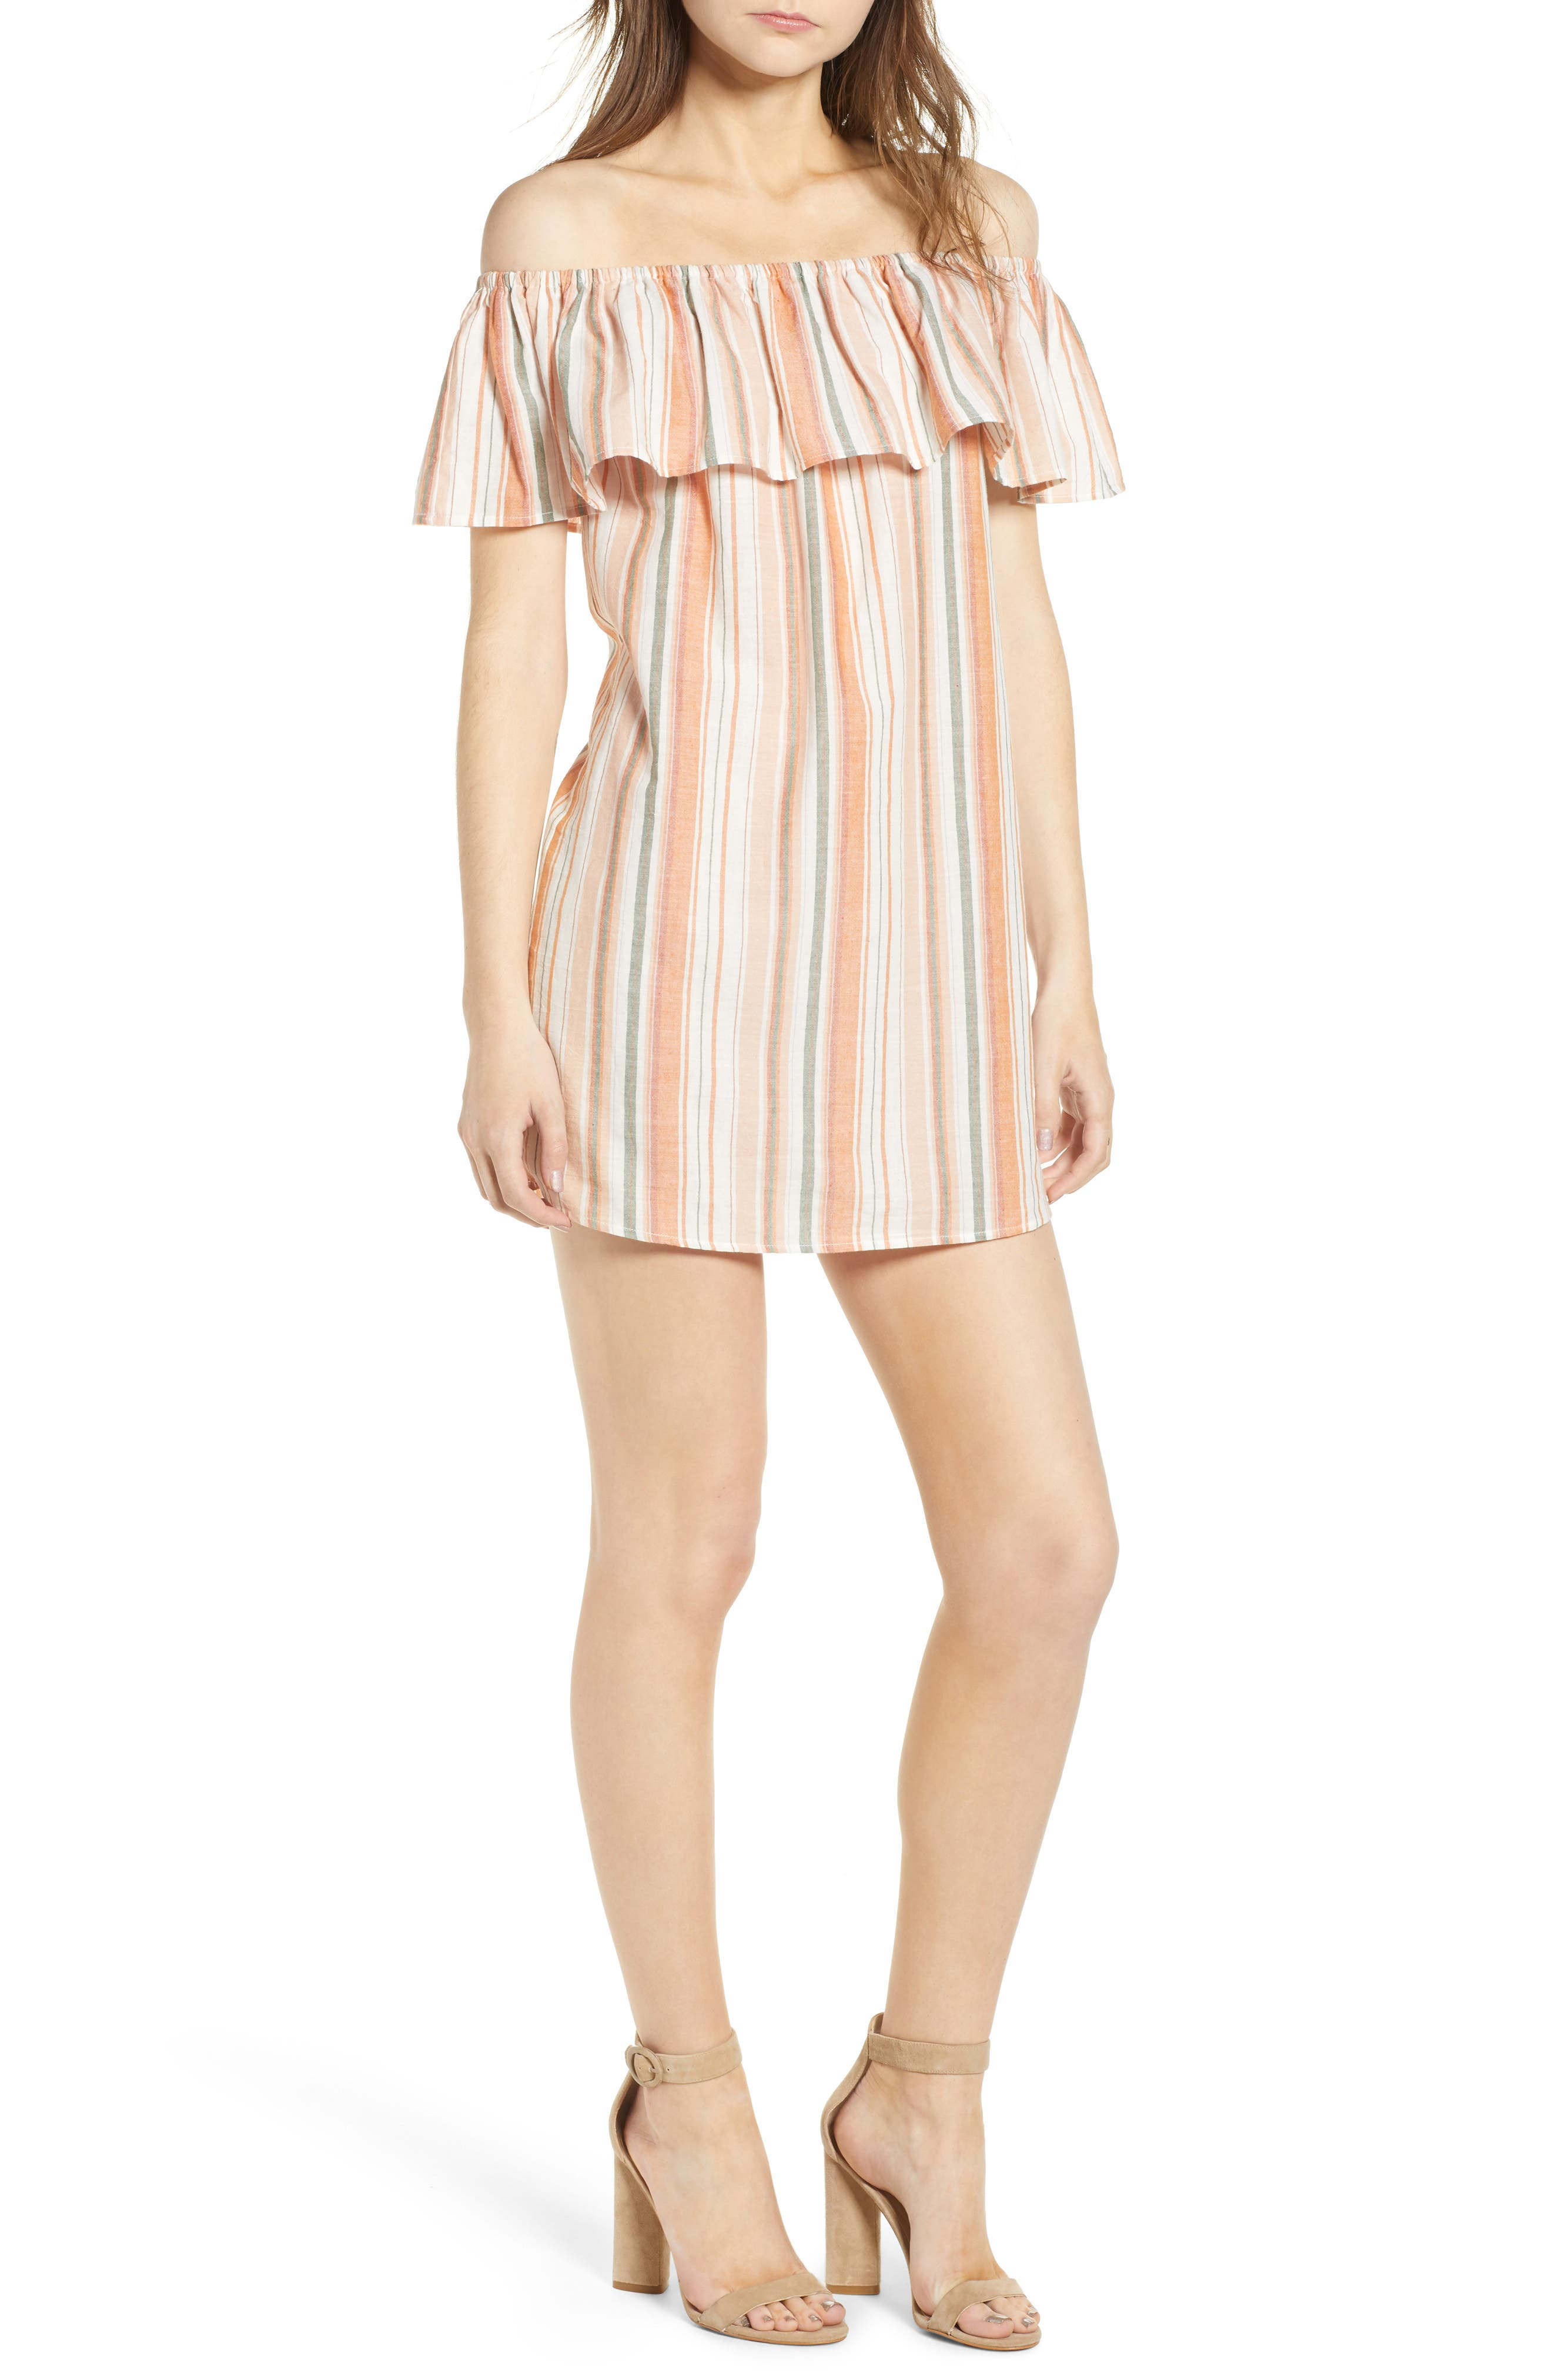 Bishop + Young Sunset Stripe Off the Shoulder Dress,                             Main thumbnail 1, color,                             844